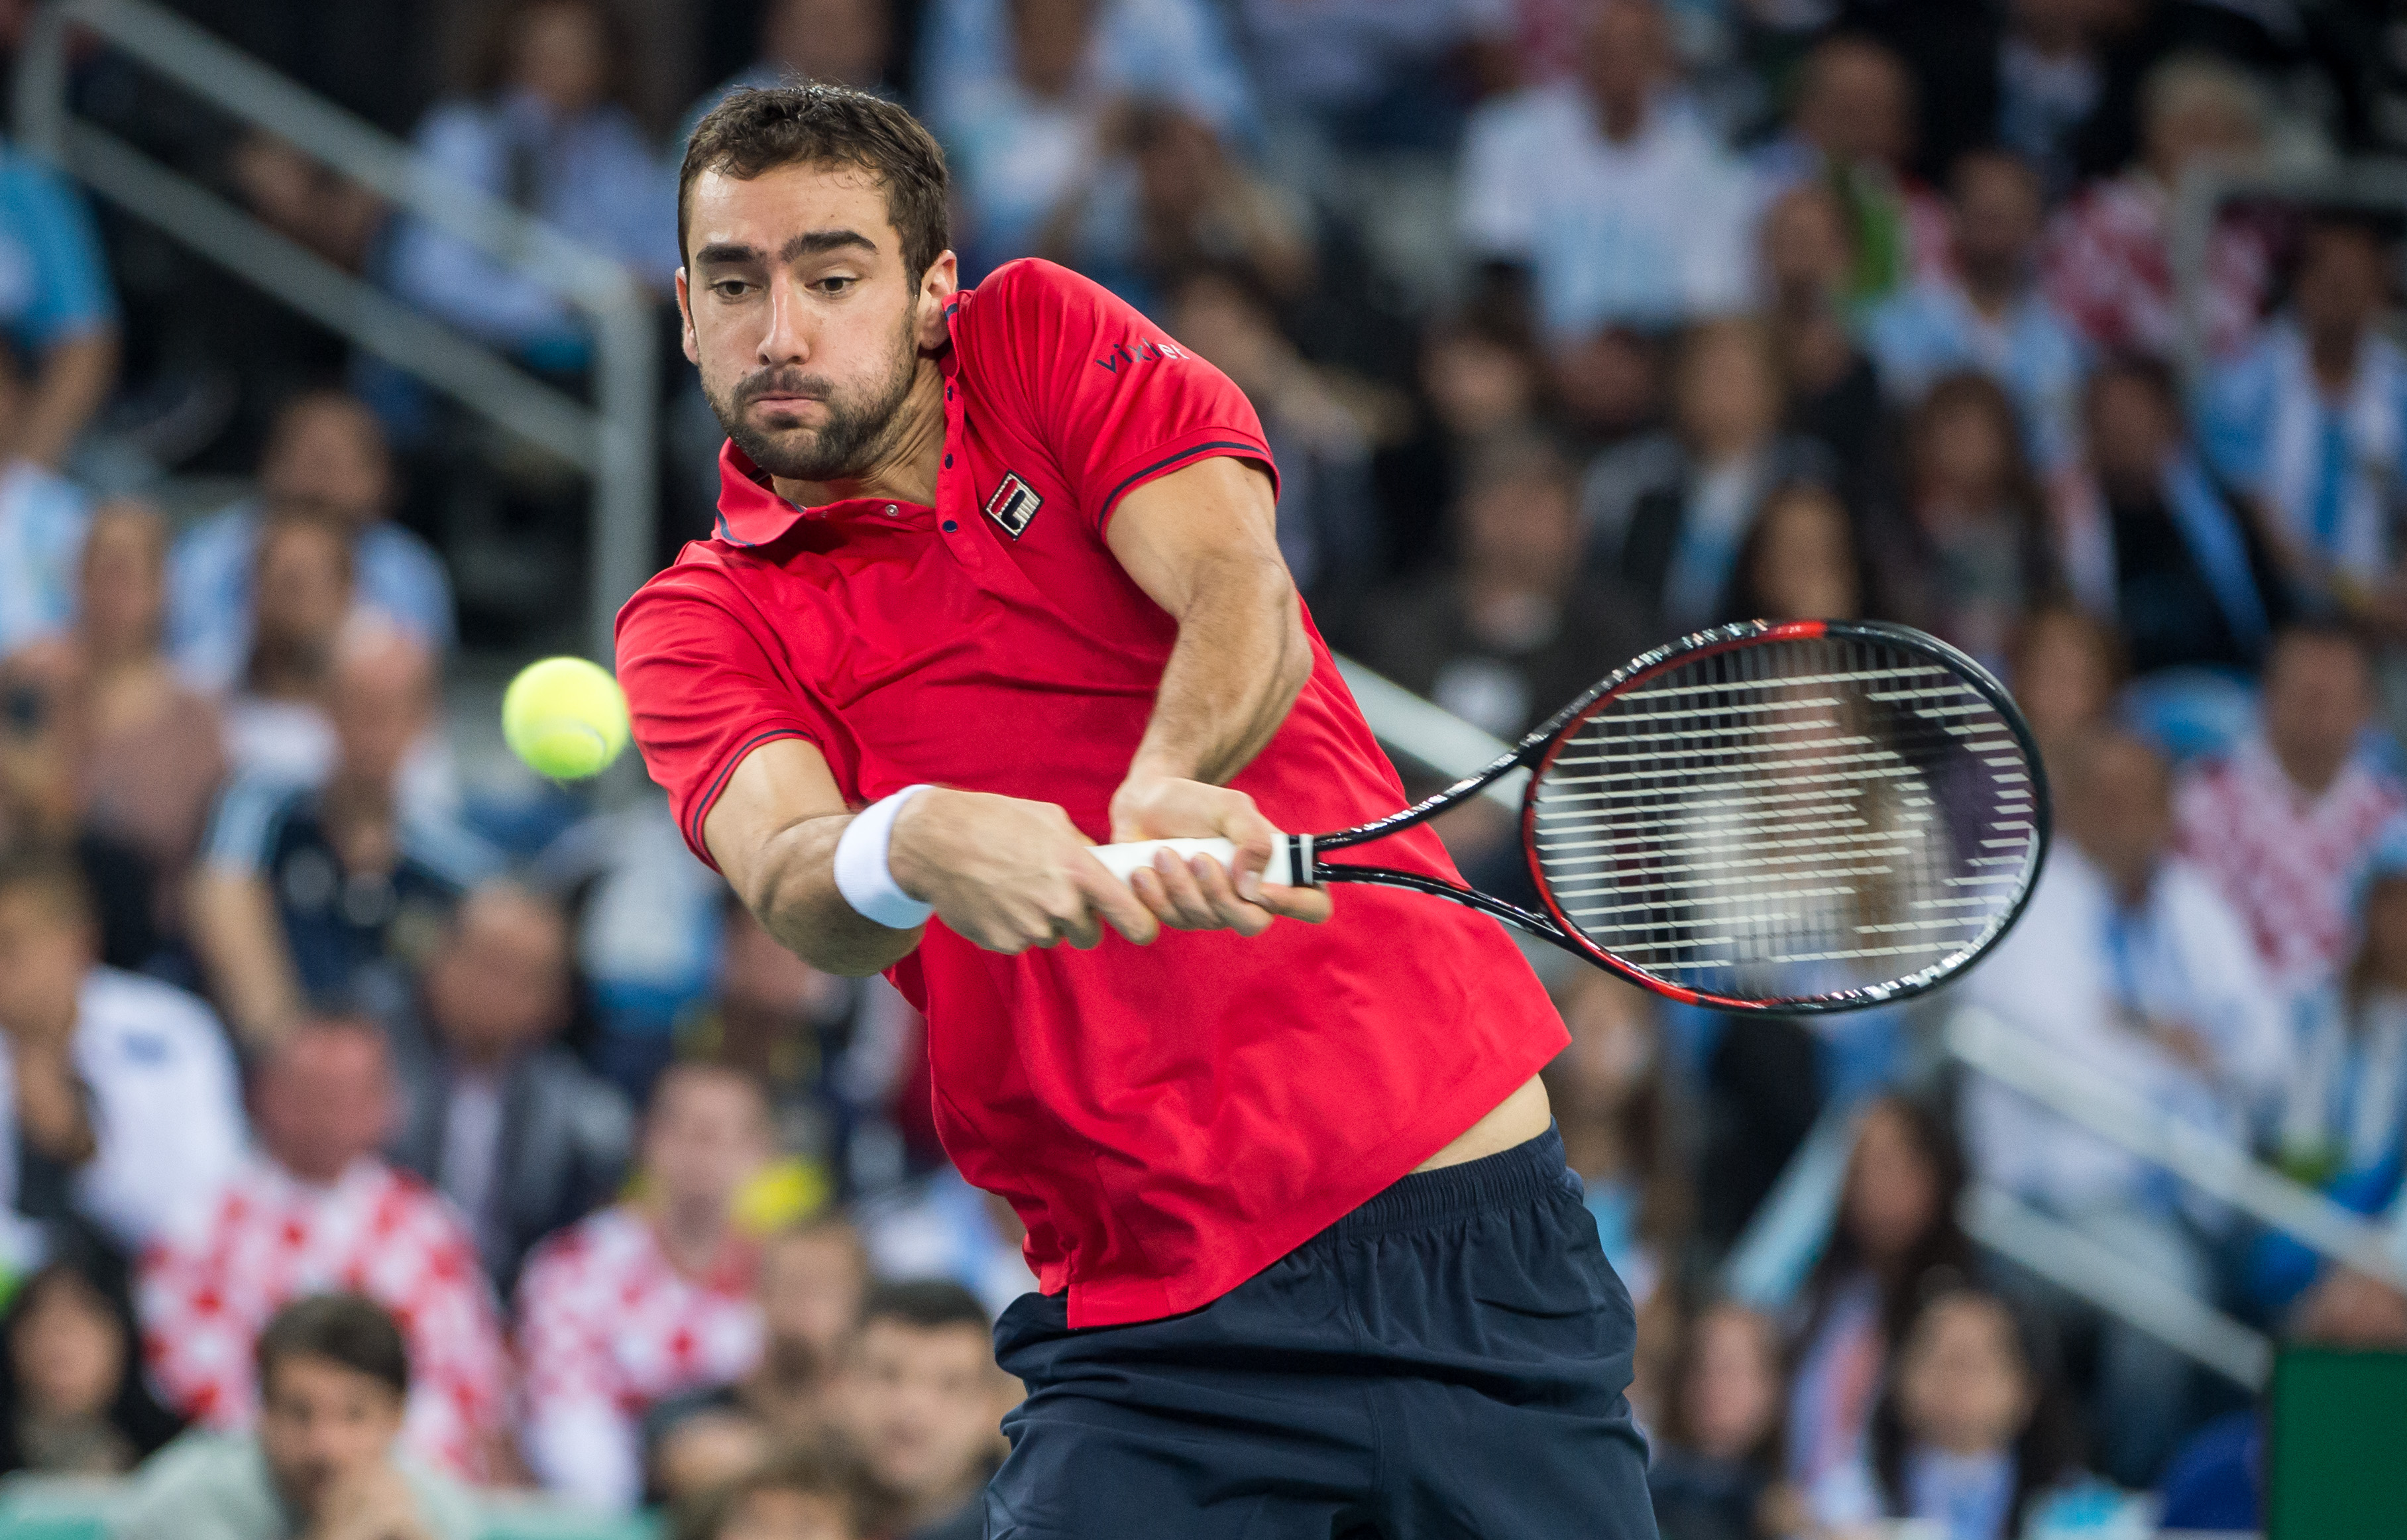 Marin Cilic's sensational return winner against Federico Delbonis is Friday's shot of the day